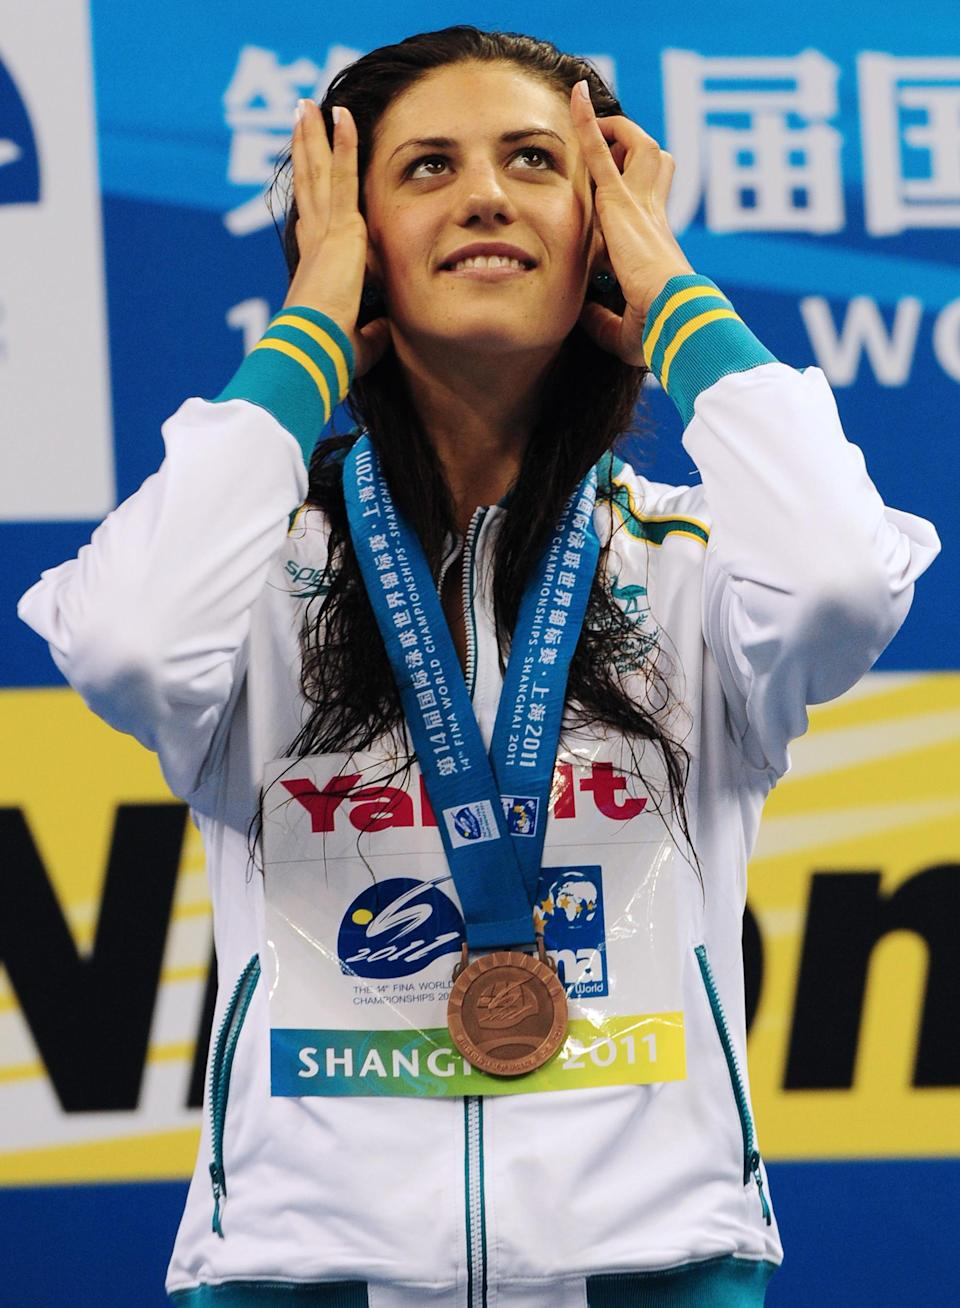 Australia's bronze medalist Stephanie Rice smiles on the podium during the award ceremony for the final of the men's 400-meter individual medley swimming event in the FINA World Championships at the indoor stadium of the Oriental Sports Center in Shanghai on July 31, 2011. (MARK RALSTON/AFP/Getty Images)